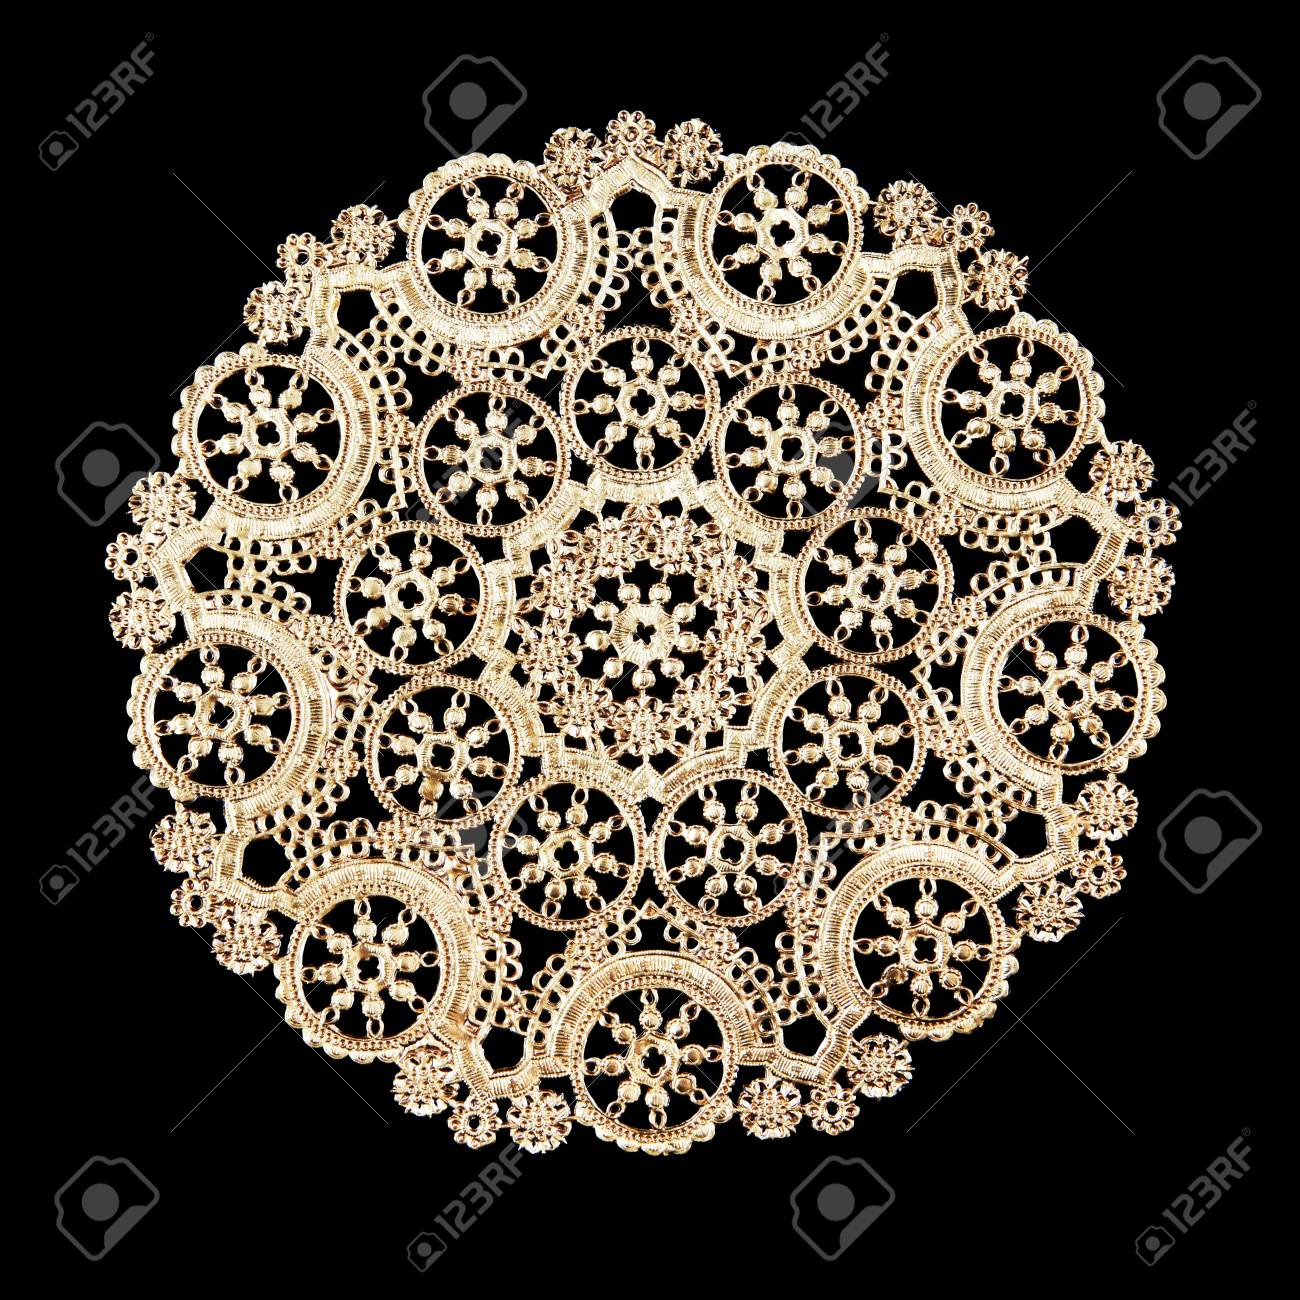 A decorative round doily isolated over black Stock Photo - 16513647